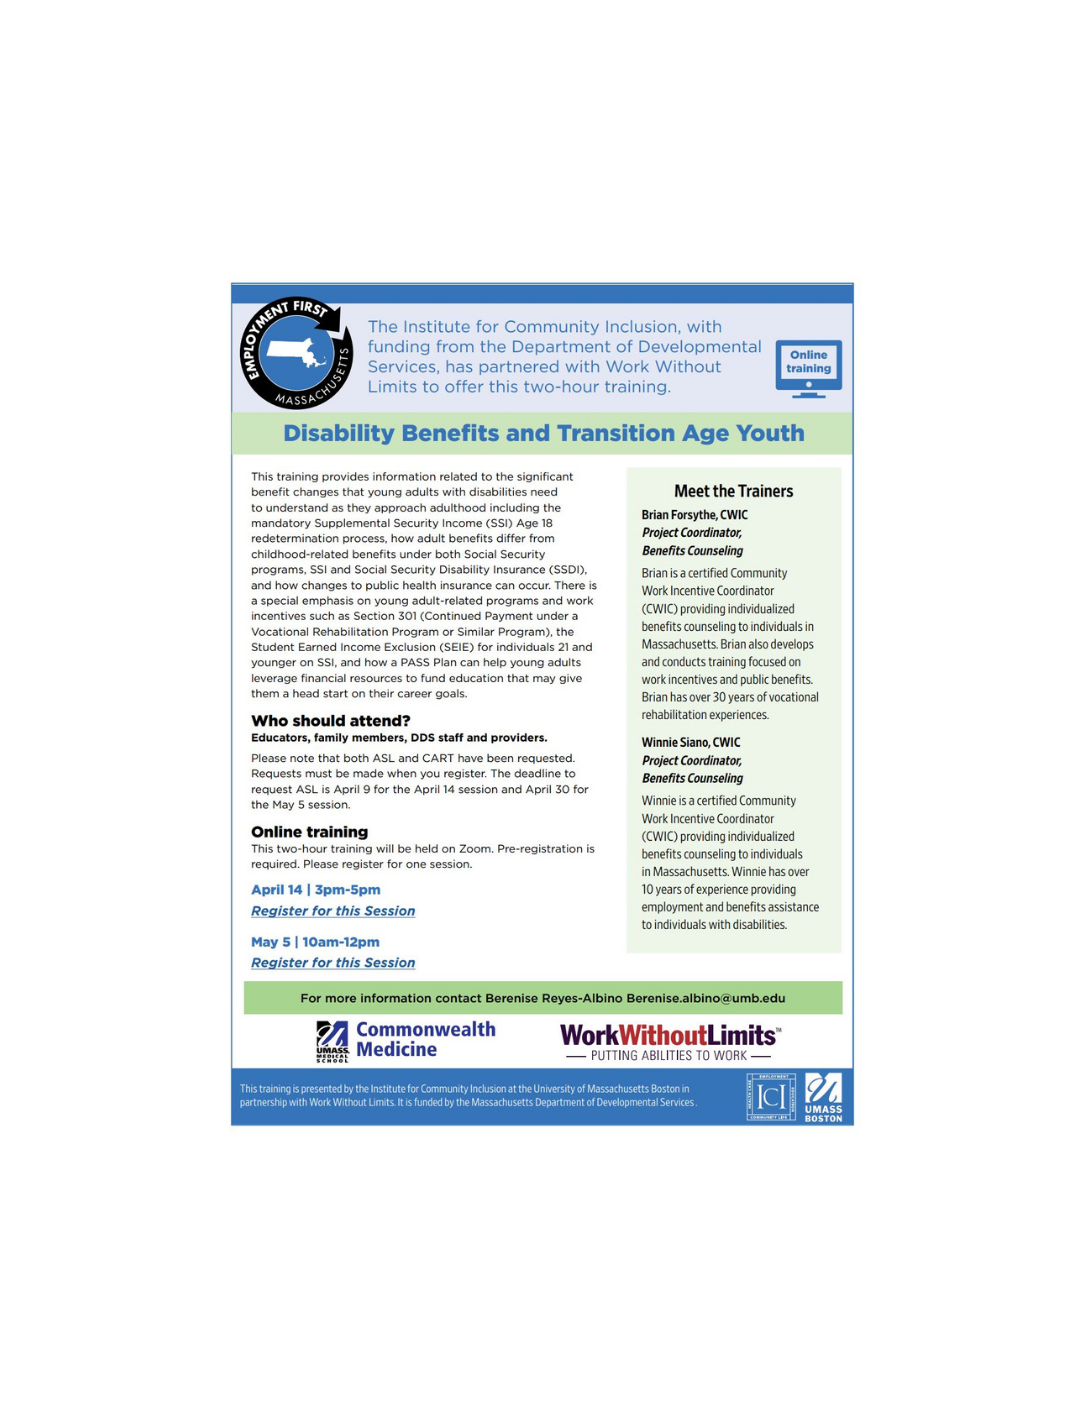 Disability Benefits and Transitional Age Youth: 2-Hour Virtual Trainings